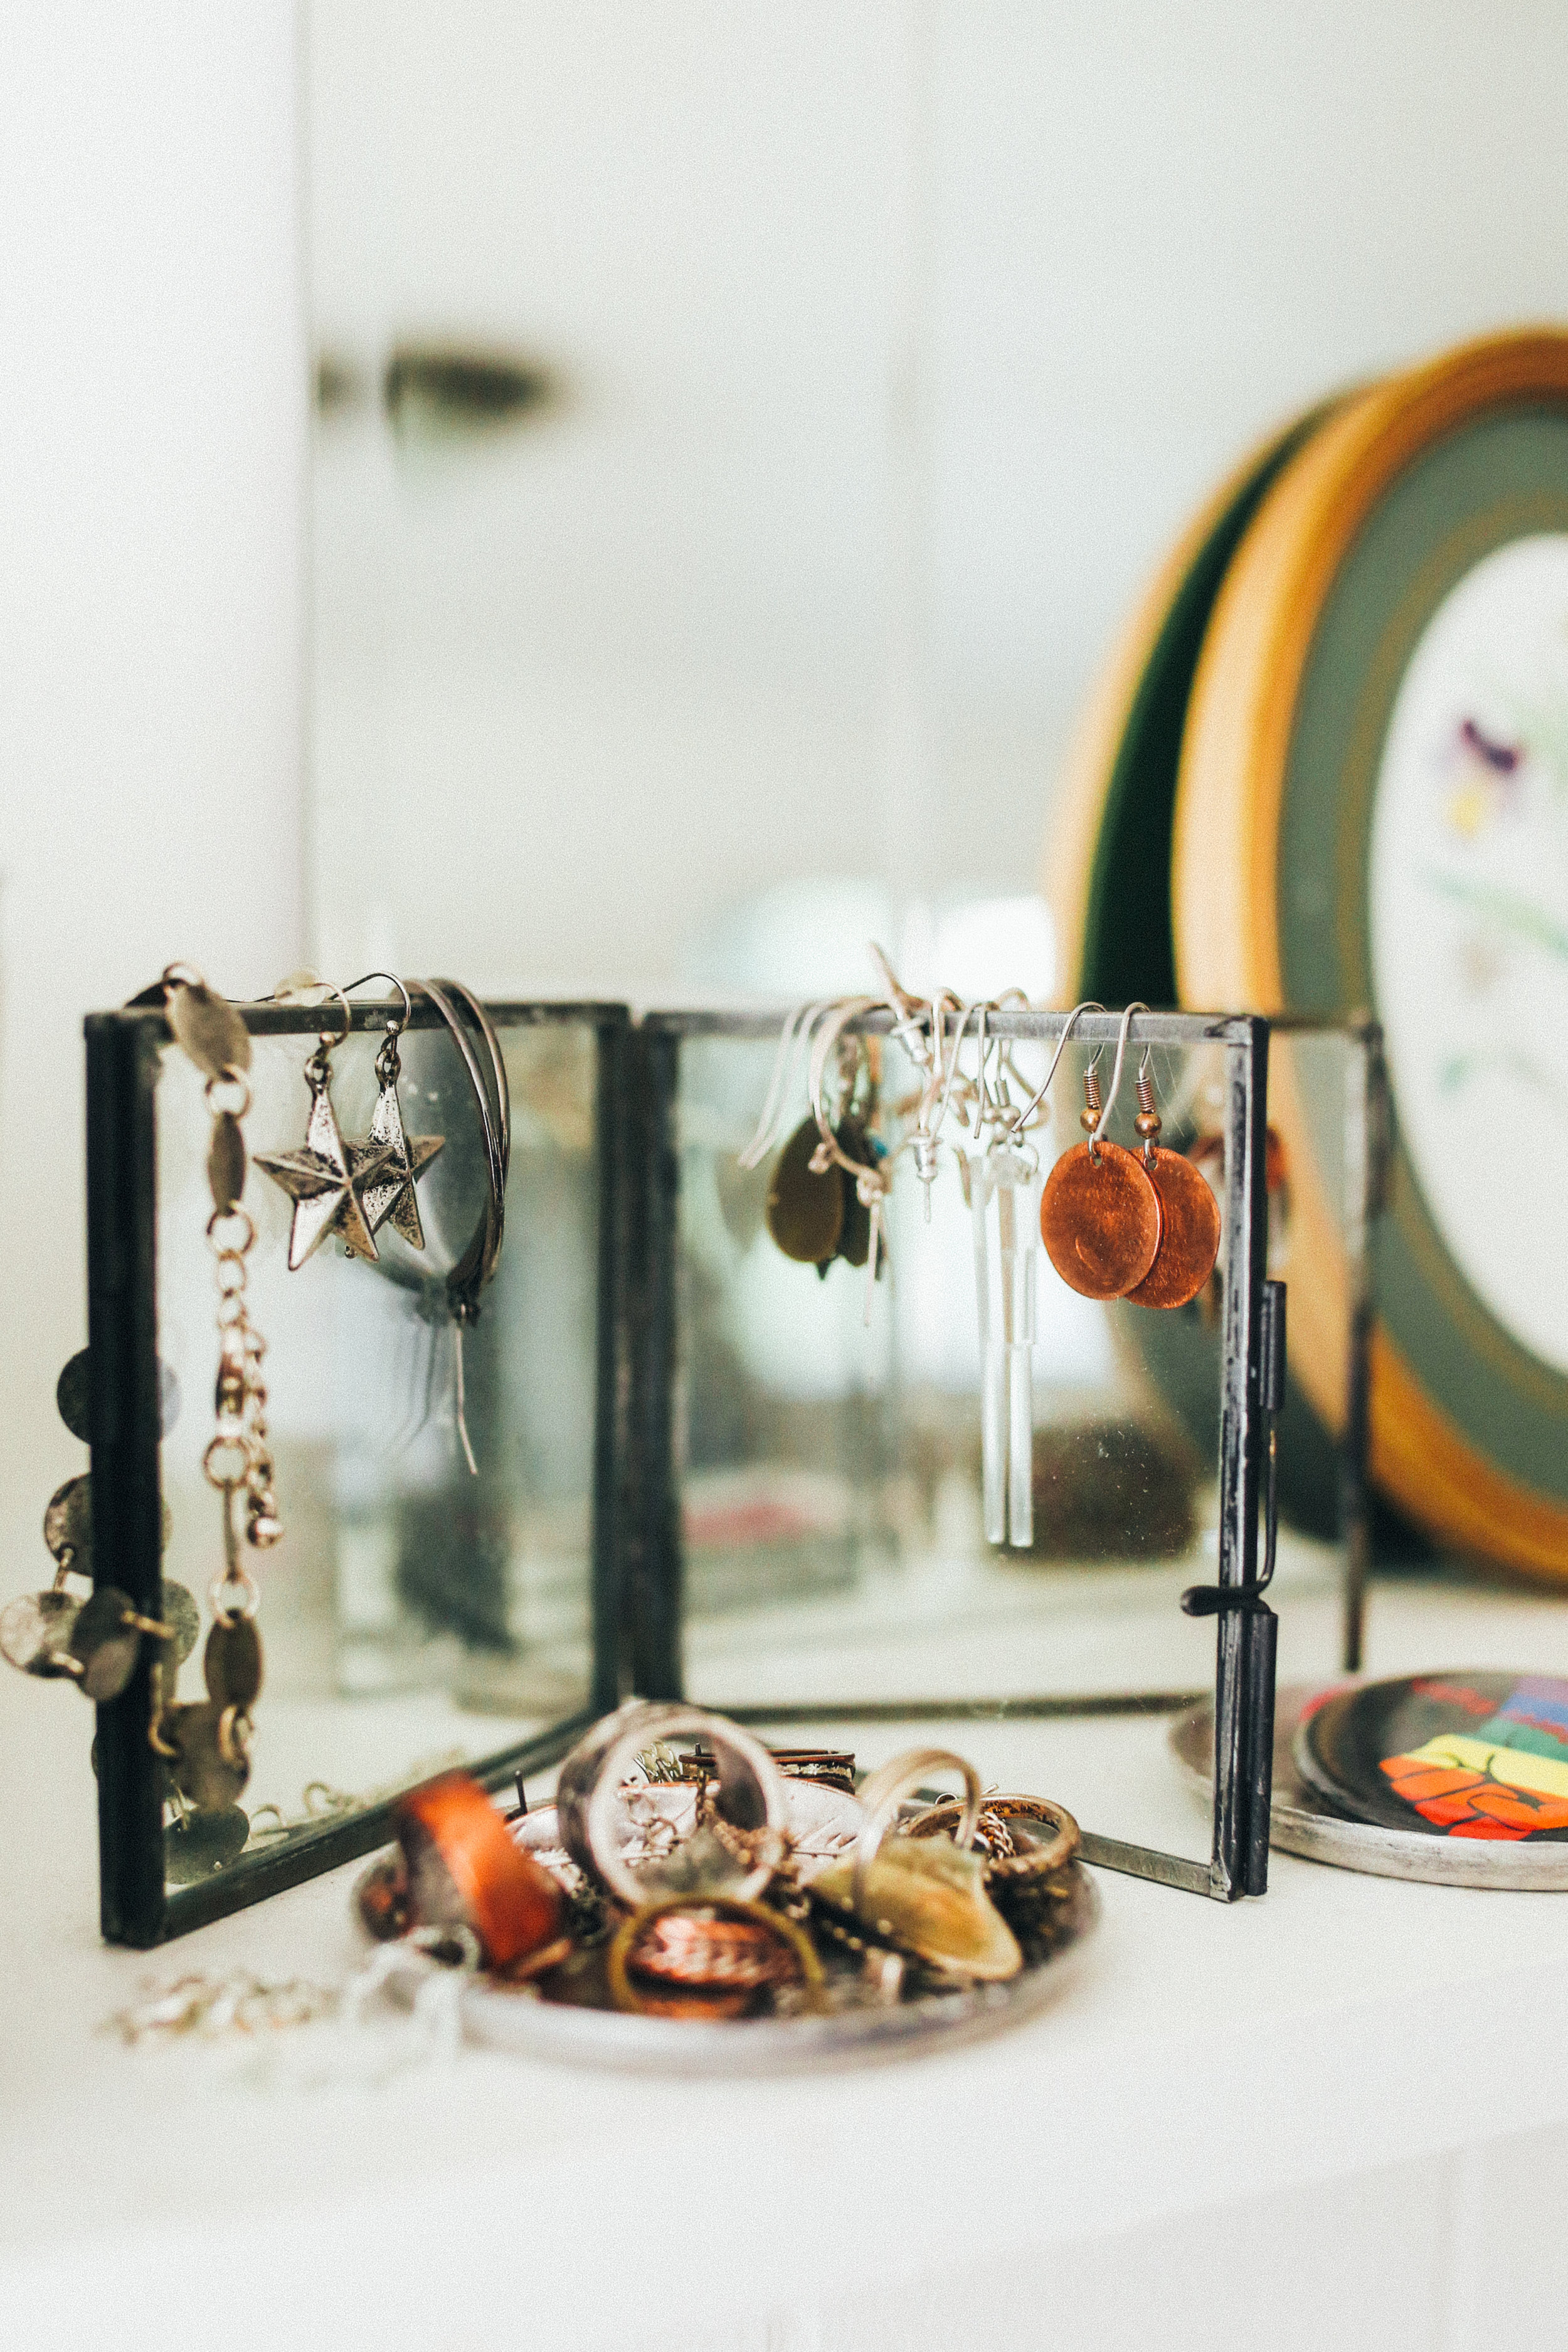 This was a glass photo frame from World Market, but I've been using it to display all of my earrings, (most of which are thrifted, big surprise)